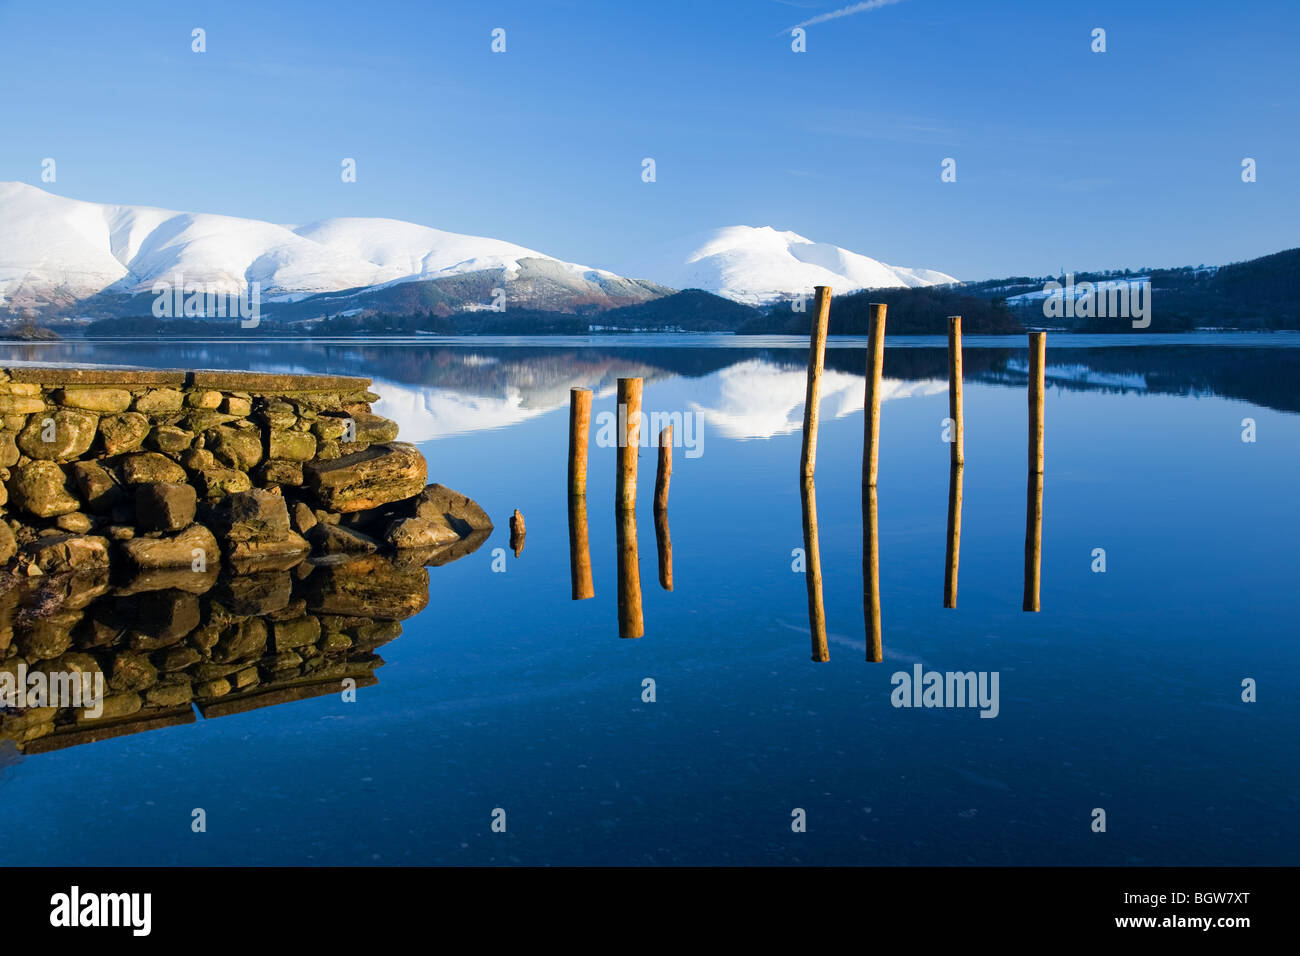 View over Derwentwater to snow clad Skiddaw and Blencathra or Saddleback and remains of old Jetty or Pier Lake District - Stock Image